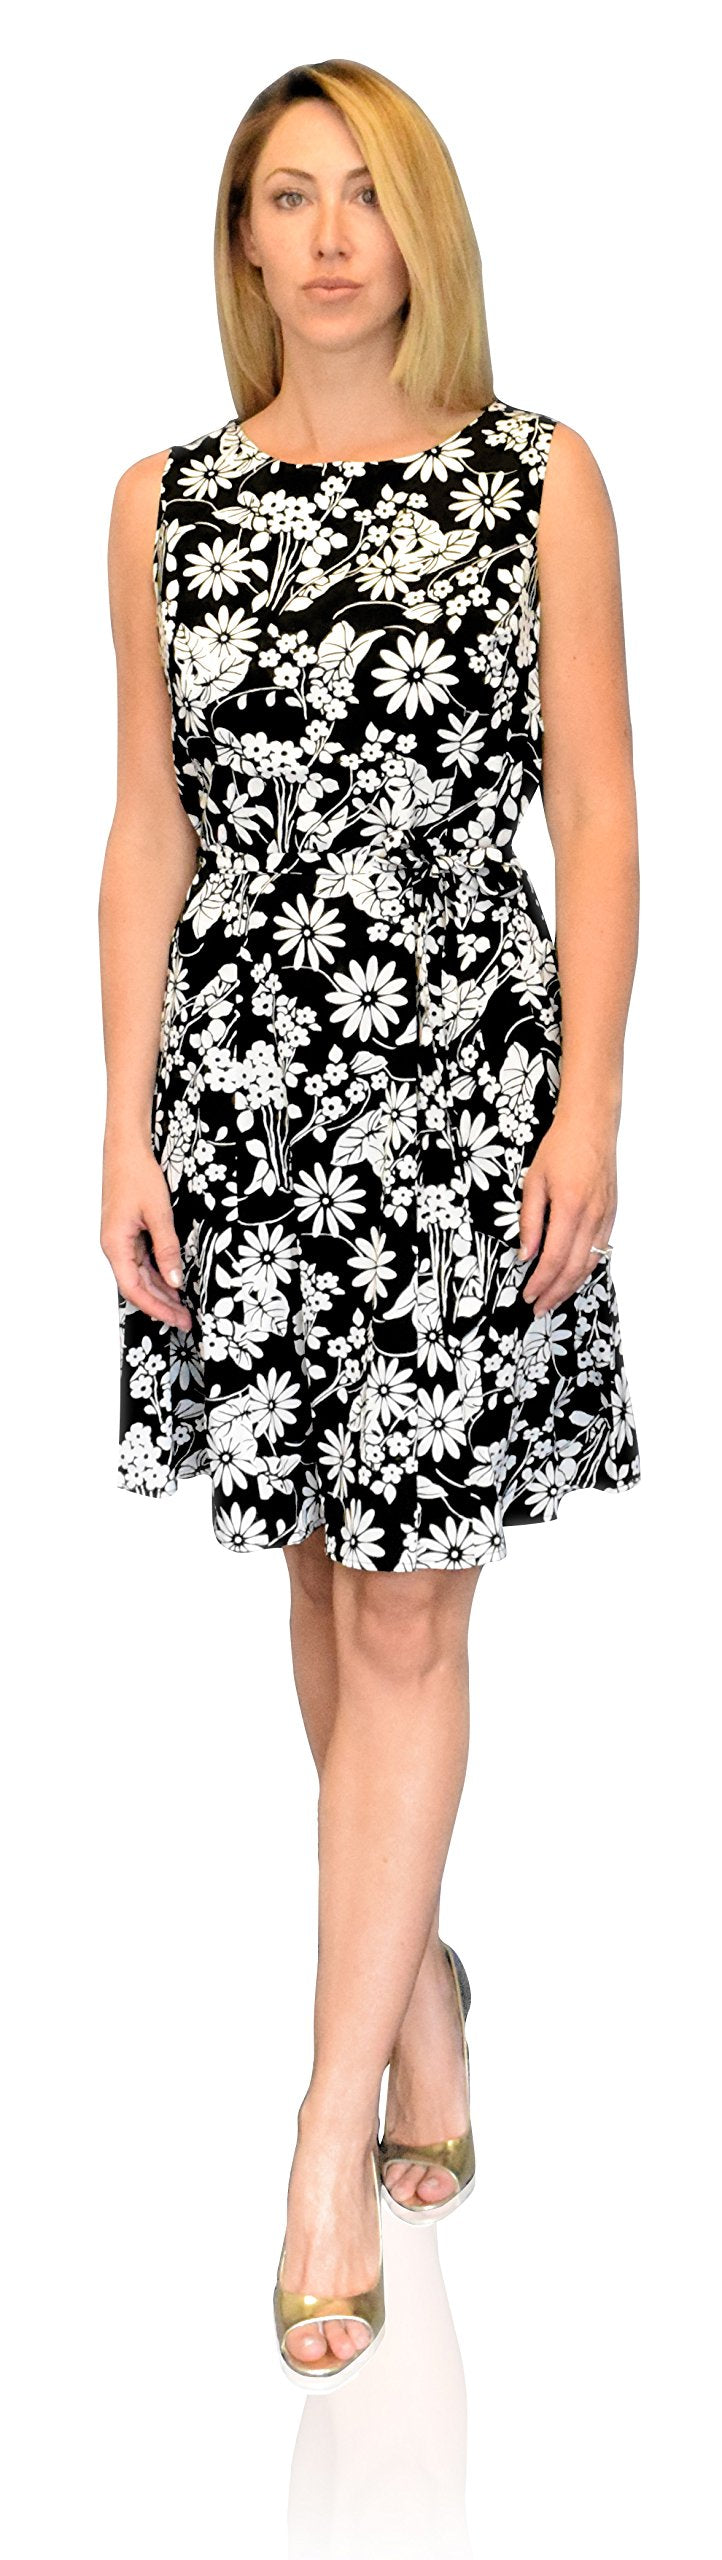 Silky Vintage Retro A Line Sleeveless Work Casual Belted Dress (Medium, Floral Black White)